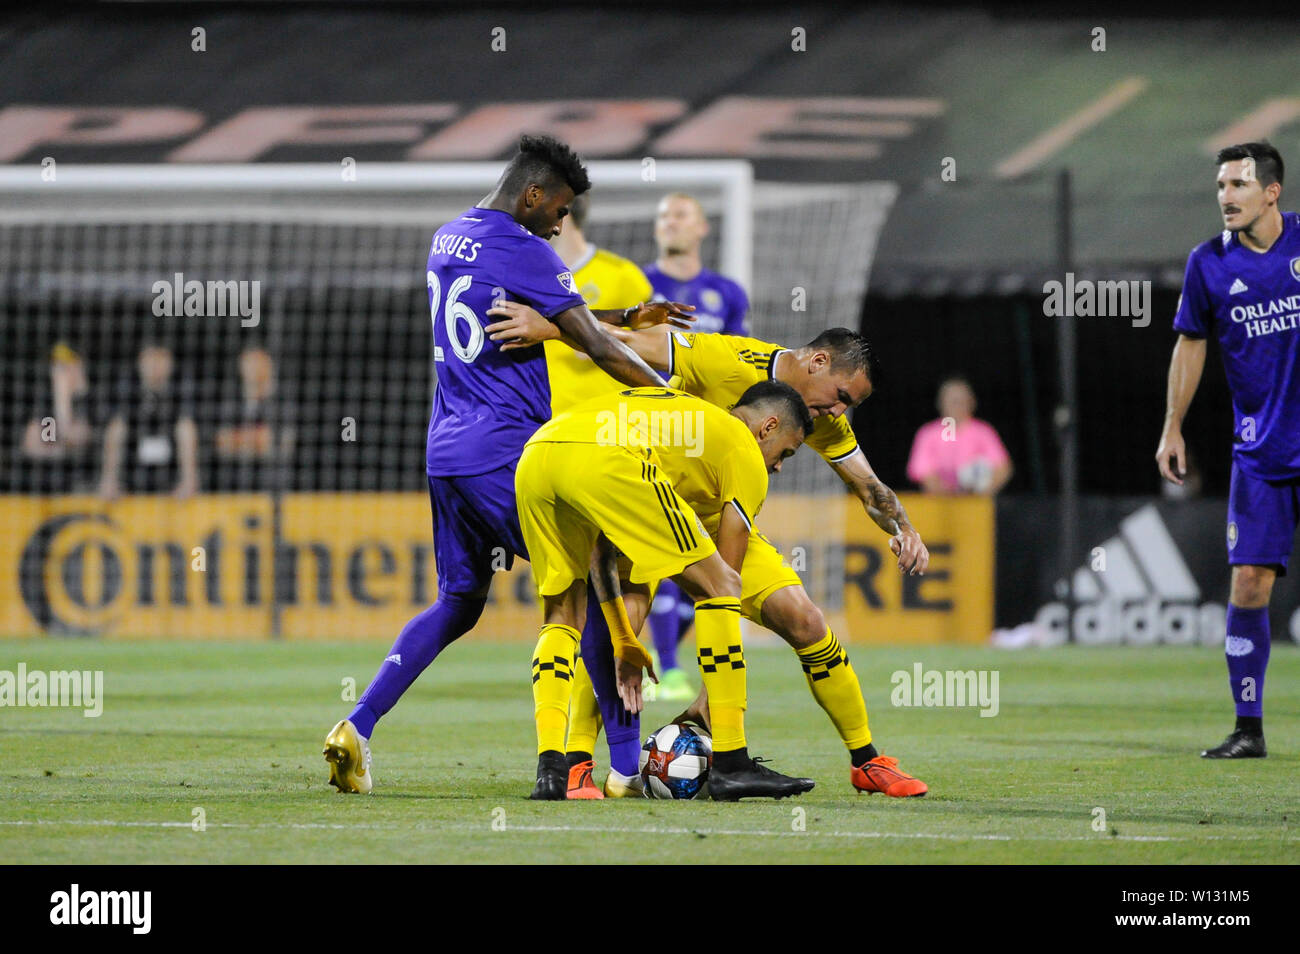 Saturday, June 29, 2019: Orlando City defender Carlos Ascues (26) books the ball attempting to use up time resulting in a yellow card in the first half of the match between Orlando City and Columbus Crew SC at MAPFRE Stadium, in Columbus OH. Mandatory Photo Credit: Dorn Byg/Cal Sport Media. Orlando City 2 - Columbus Crew SC 0 at the end of the match Stock Photo